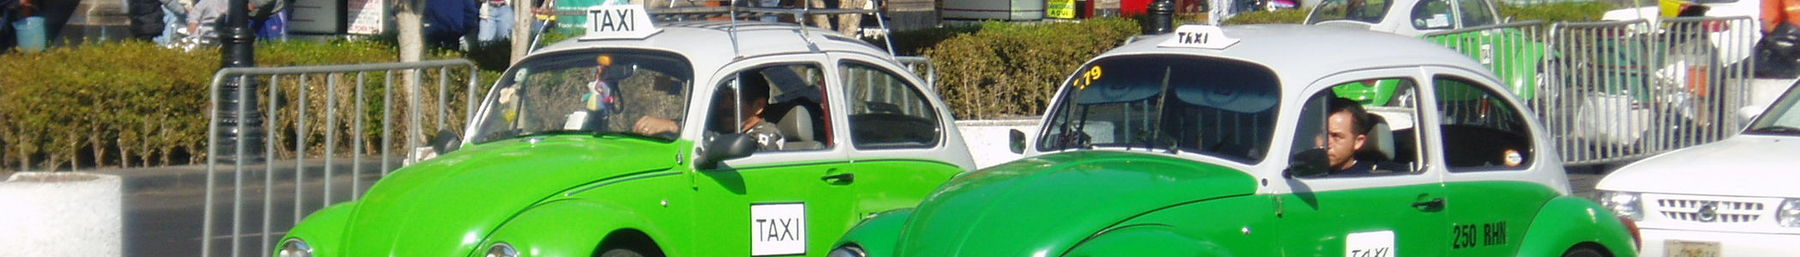 Mexico City banner Taxis.jpg